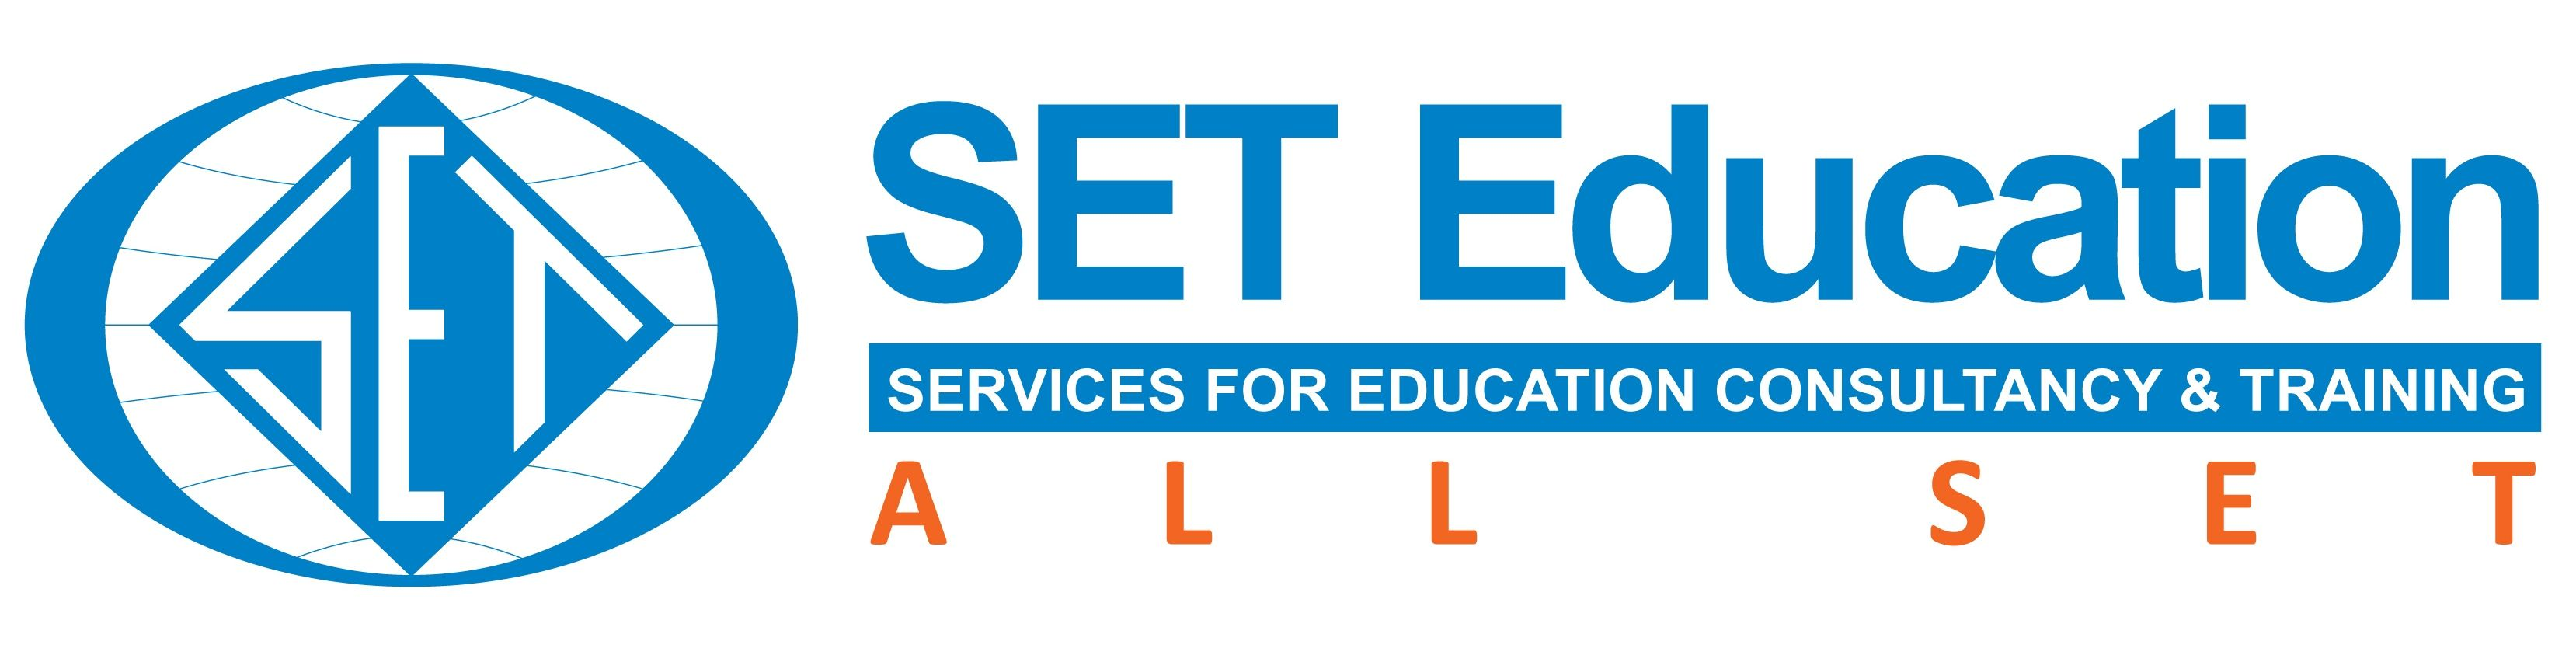 Logo-SET-Education---ALL-SET-color-02